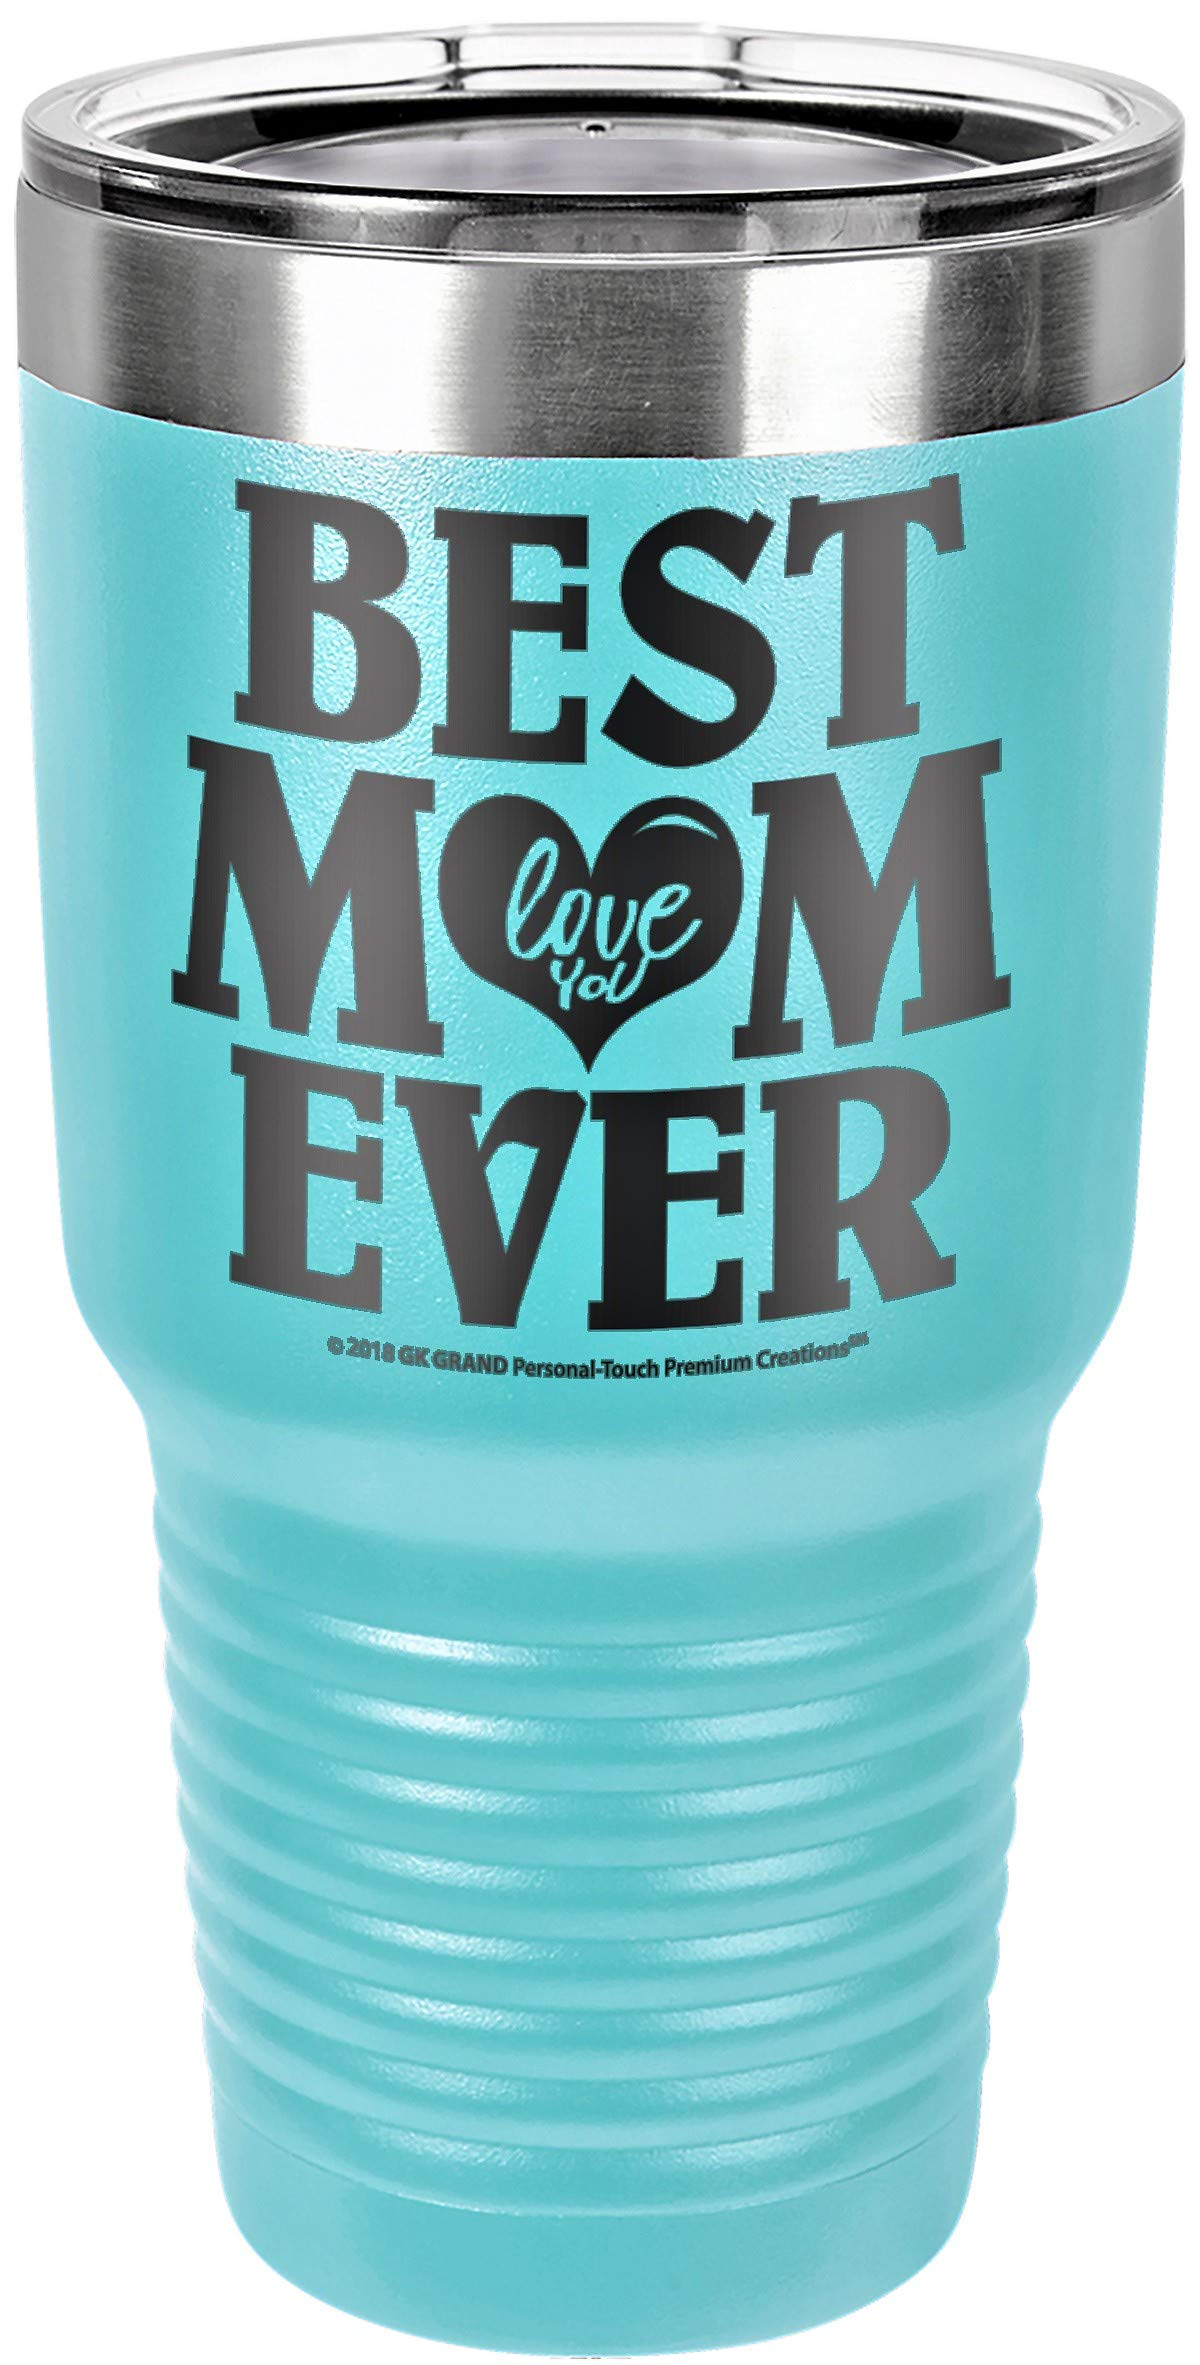 """GIFT FOR MOM – """"BEST MOM EVER - LOVE YOU"""" GK Grand Engraved Stainless Steel Vacuum Insulated Tumbler Travel Coffee Mug Hot & Cold Drink Wine Mothers Day Birthday Christmas (Sky Blue, 30oz)"""